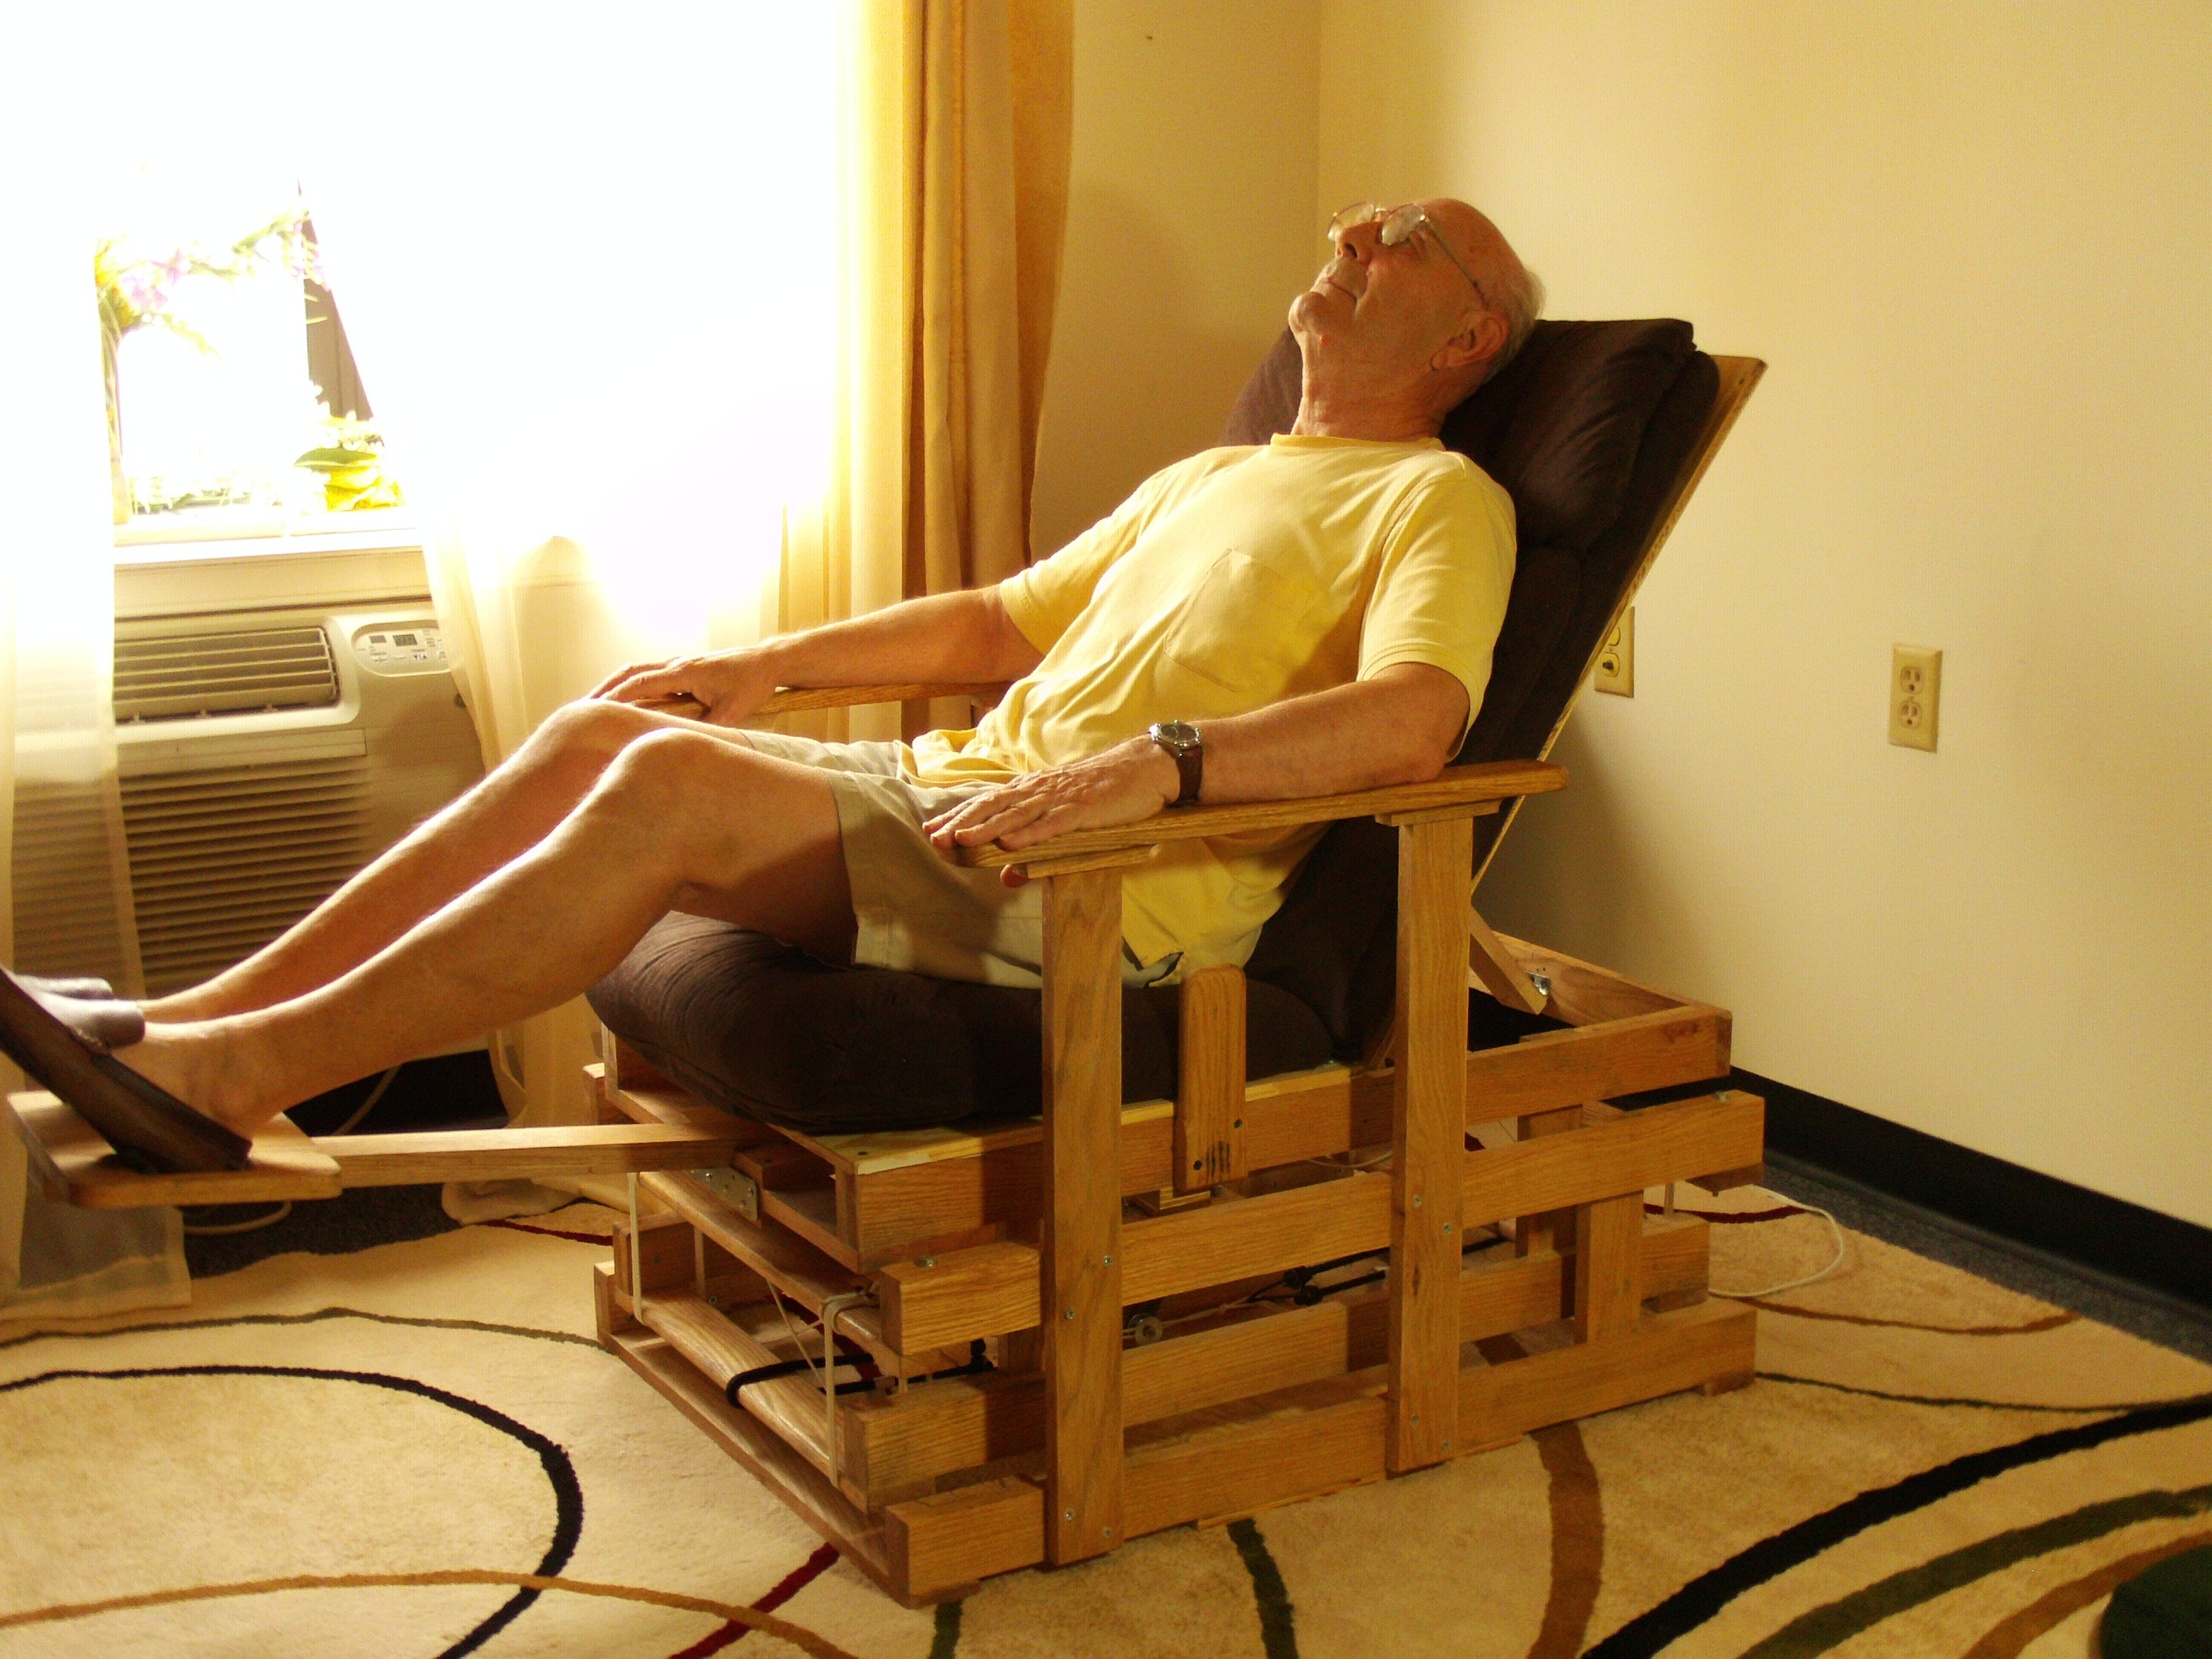 Transfomable Gliding Chair with ElectricActuator